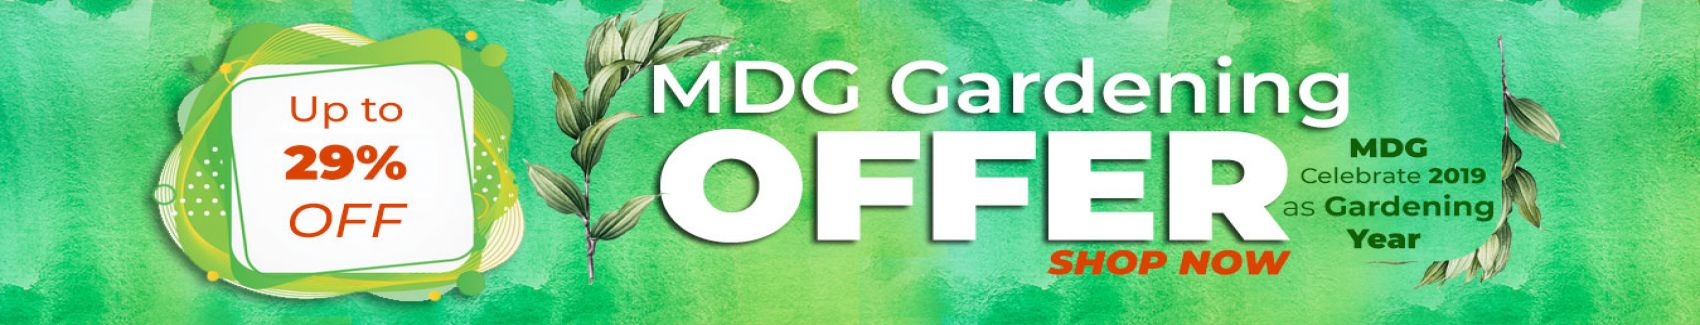 https://www.mydreamgarden.in/mdg-gardening-offer.html